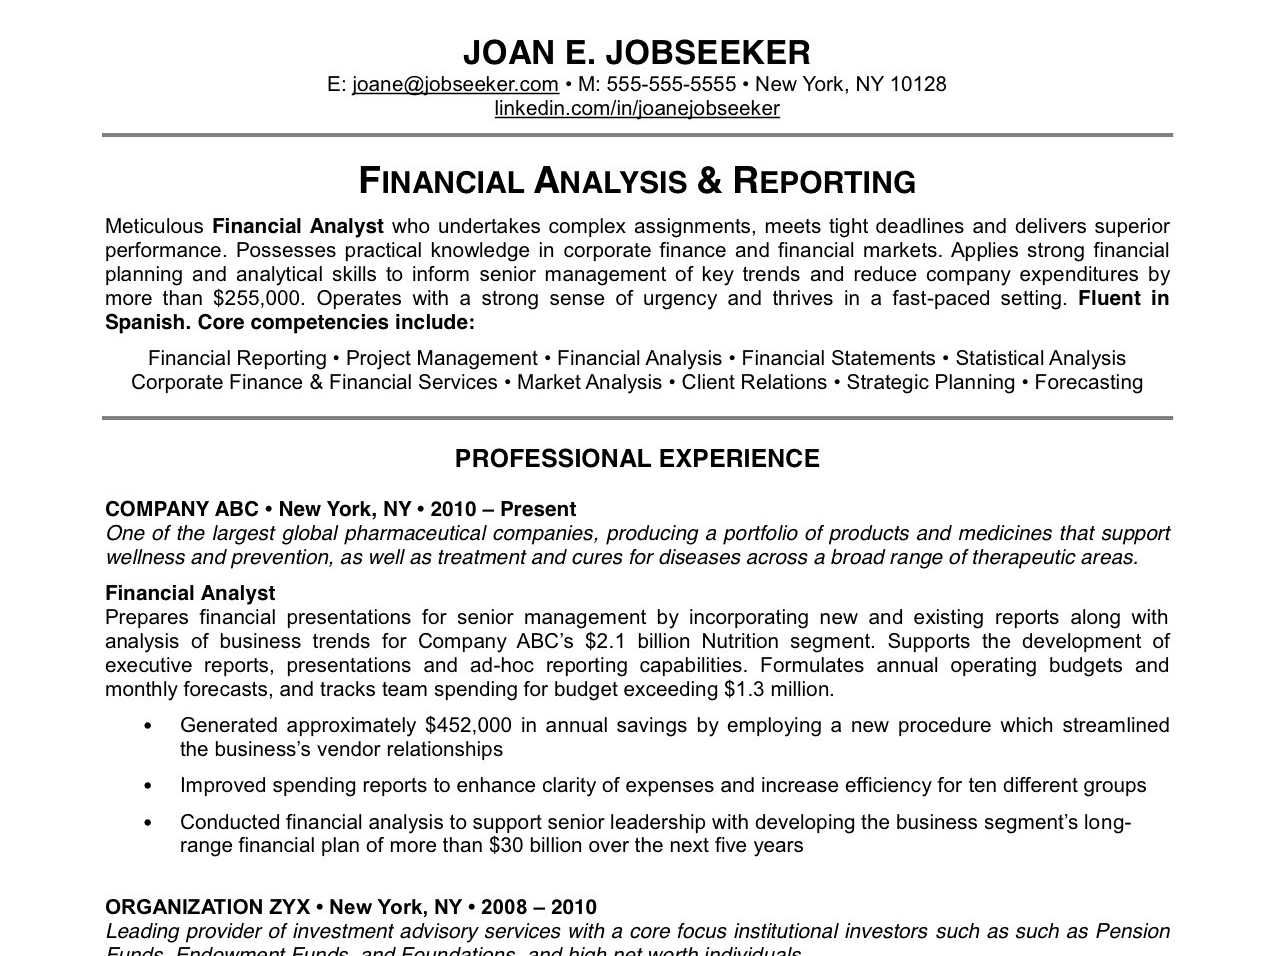 19 reasons why this is an excellent resume career